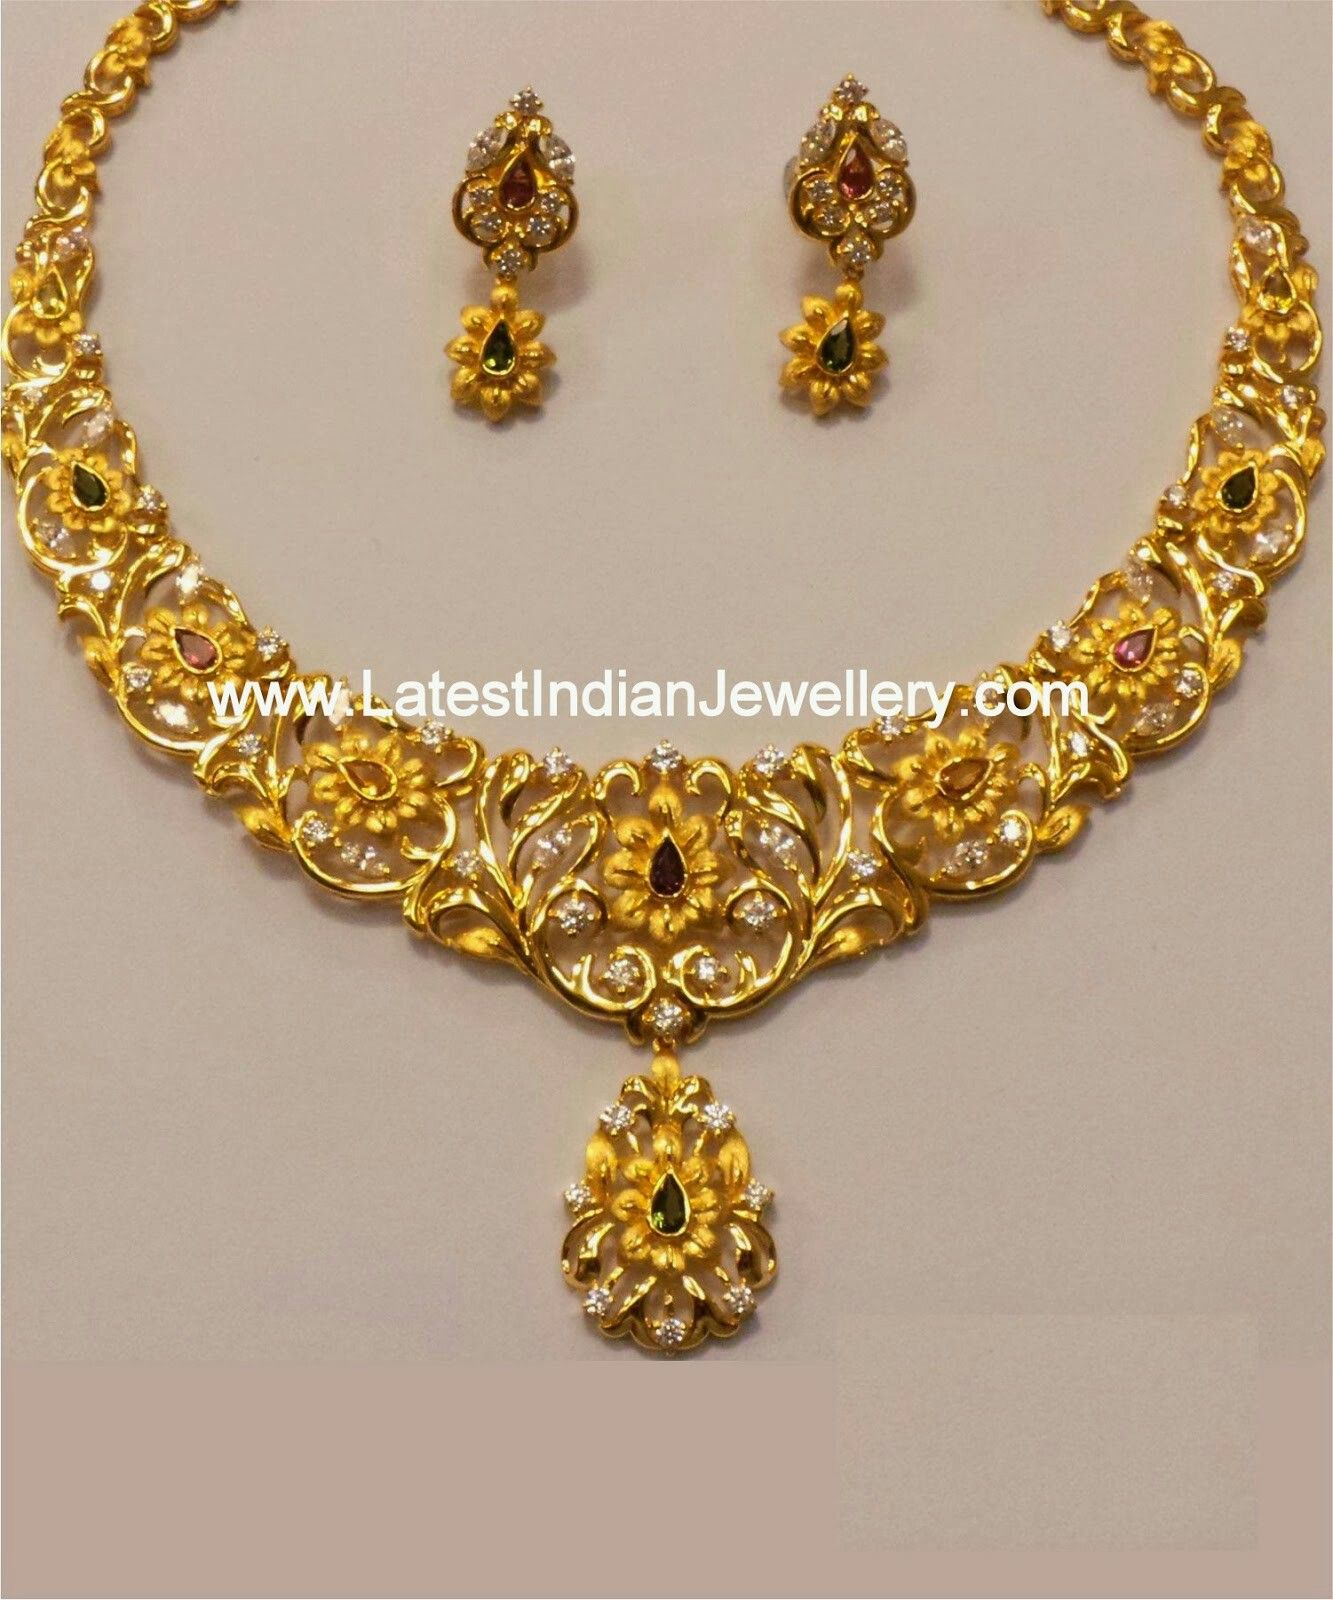 Pin by shazia zubair on Gold Necklace Designs | Pinterest ...